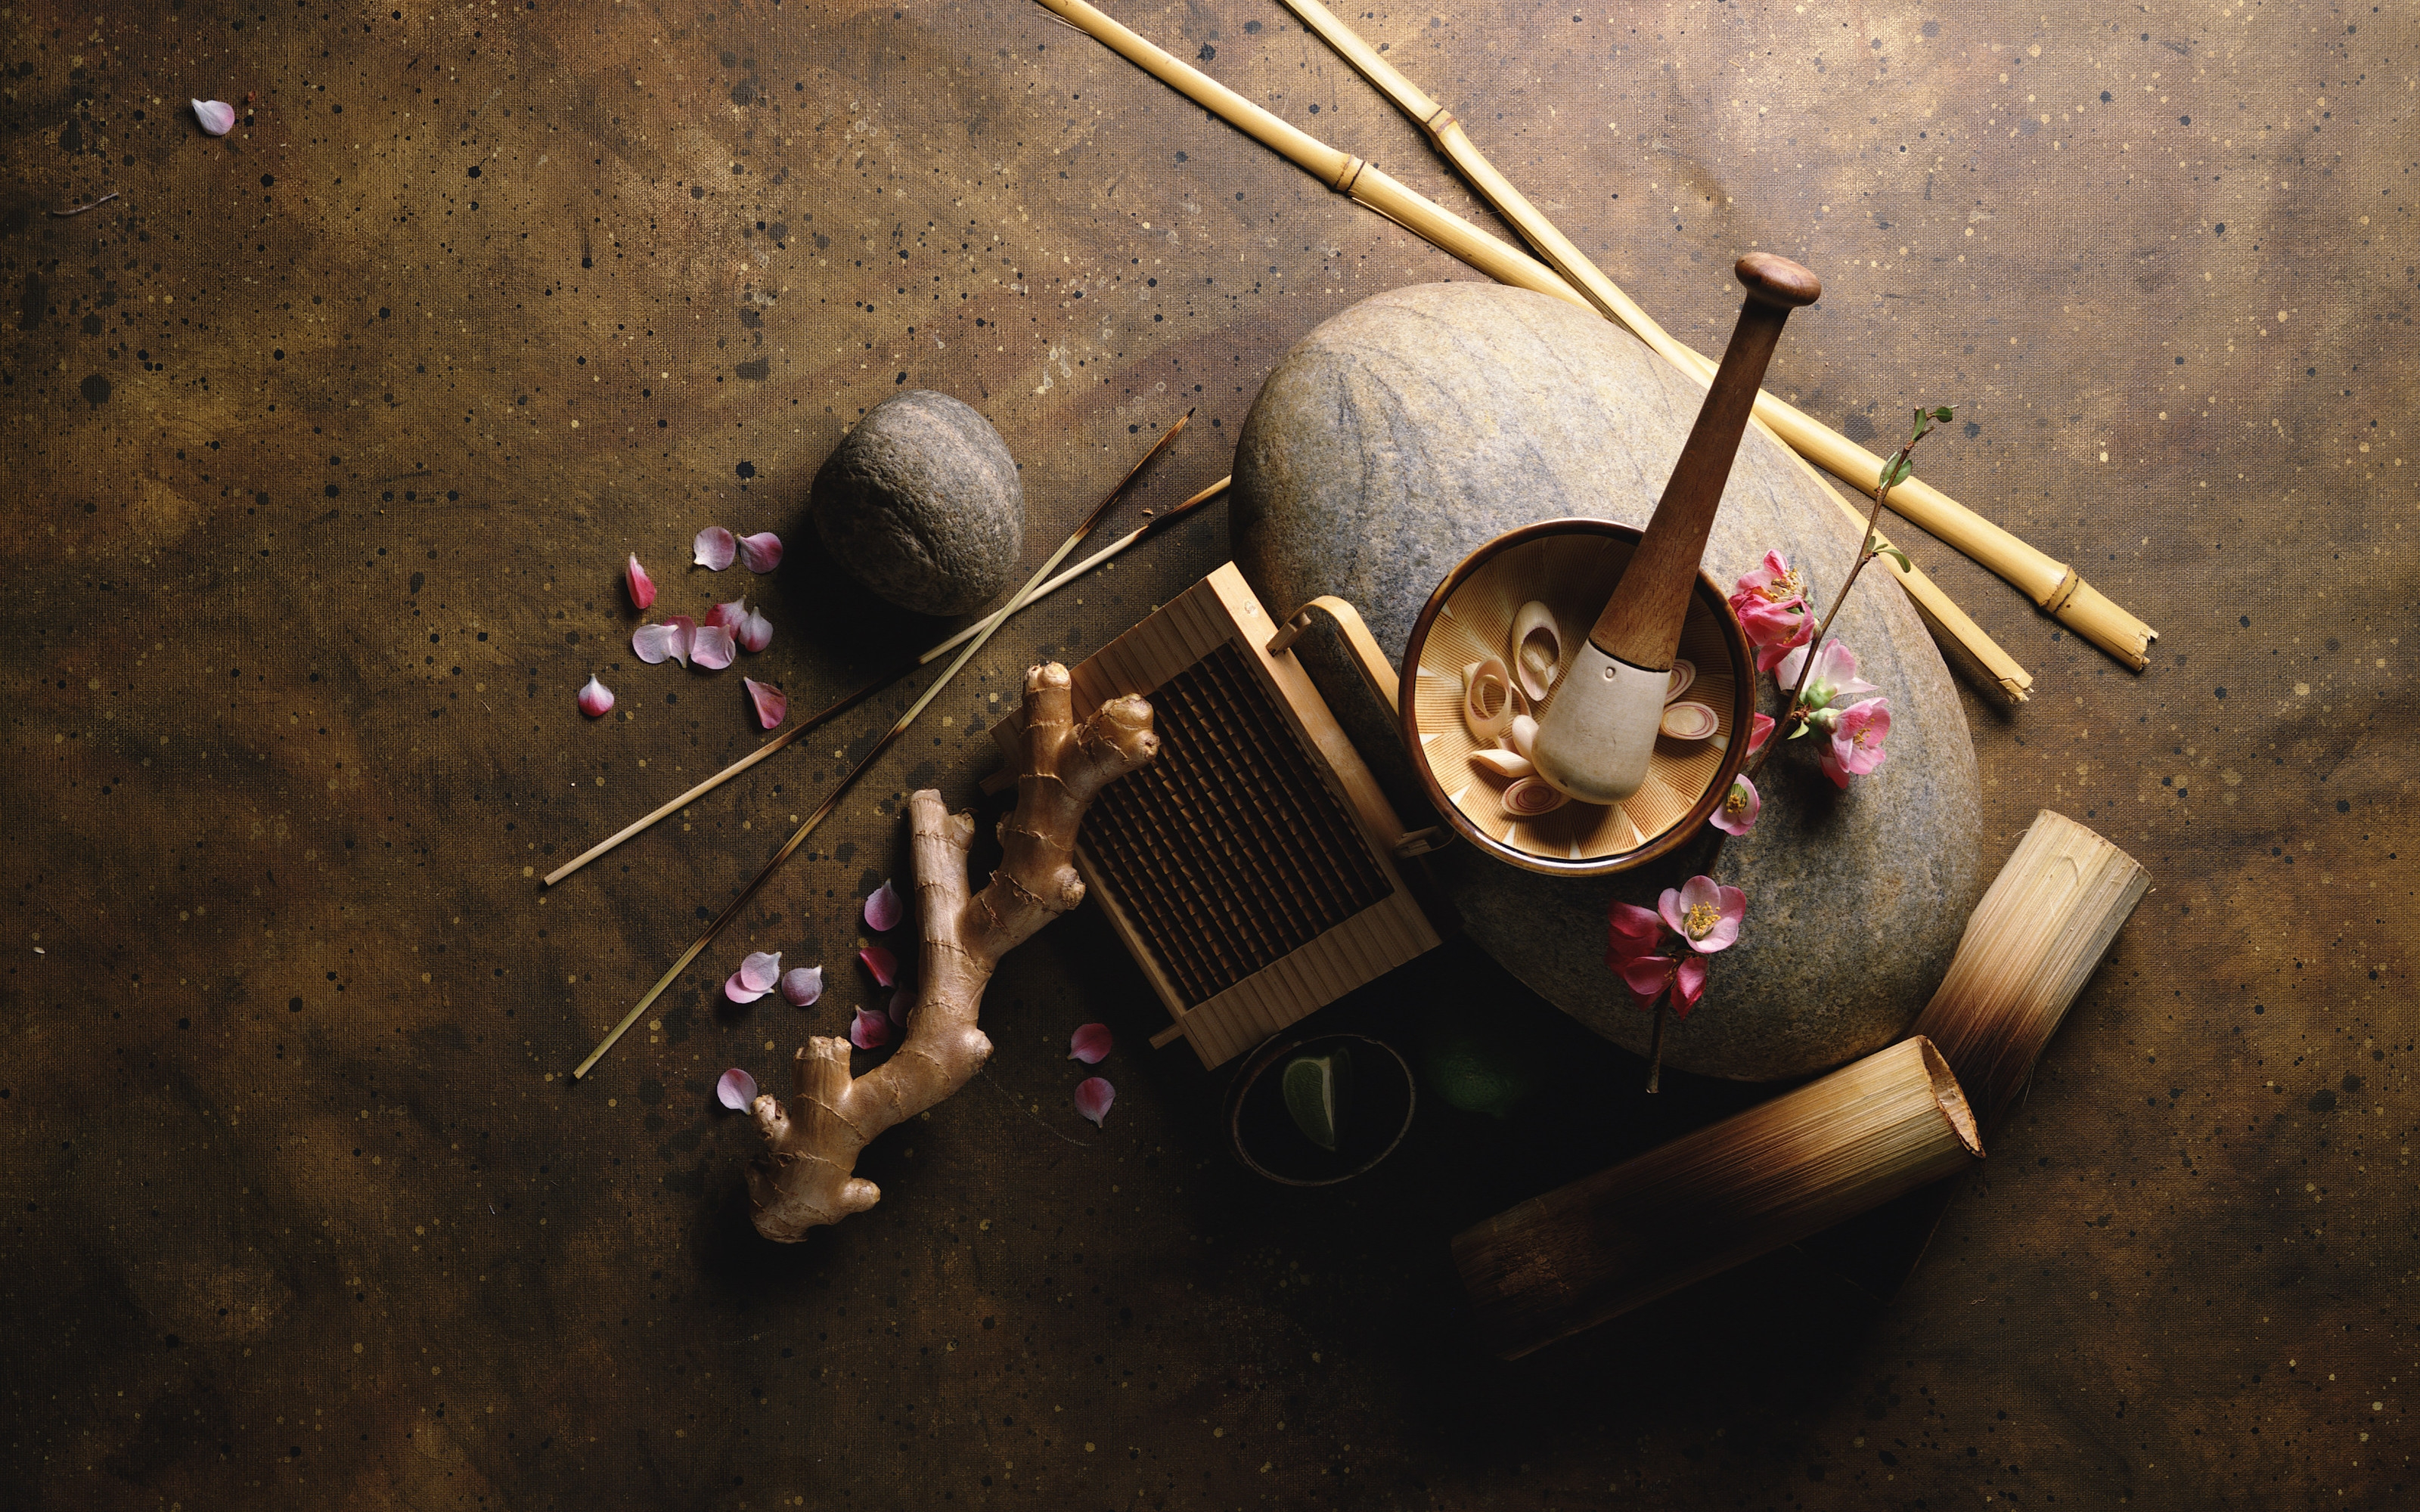 156453 download wallpaper Miscellanea, Miscellaneous, Bamboo, Root, Petals, Sticks, Pestle, Mortar screensavers and pictures for free